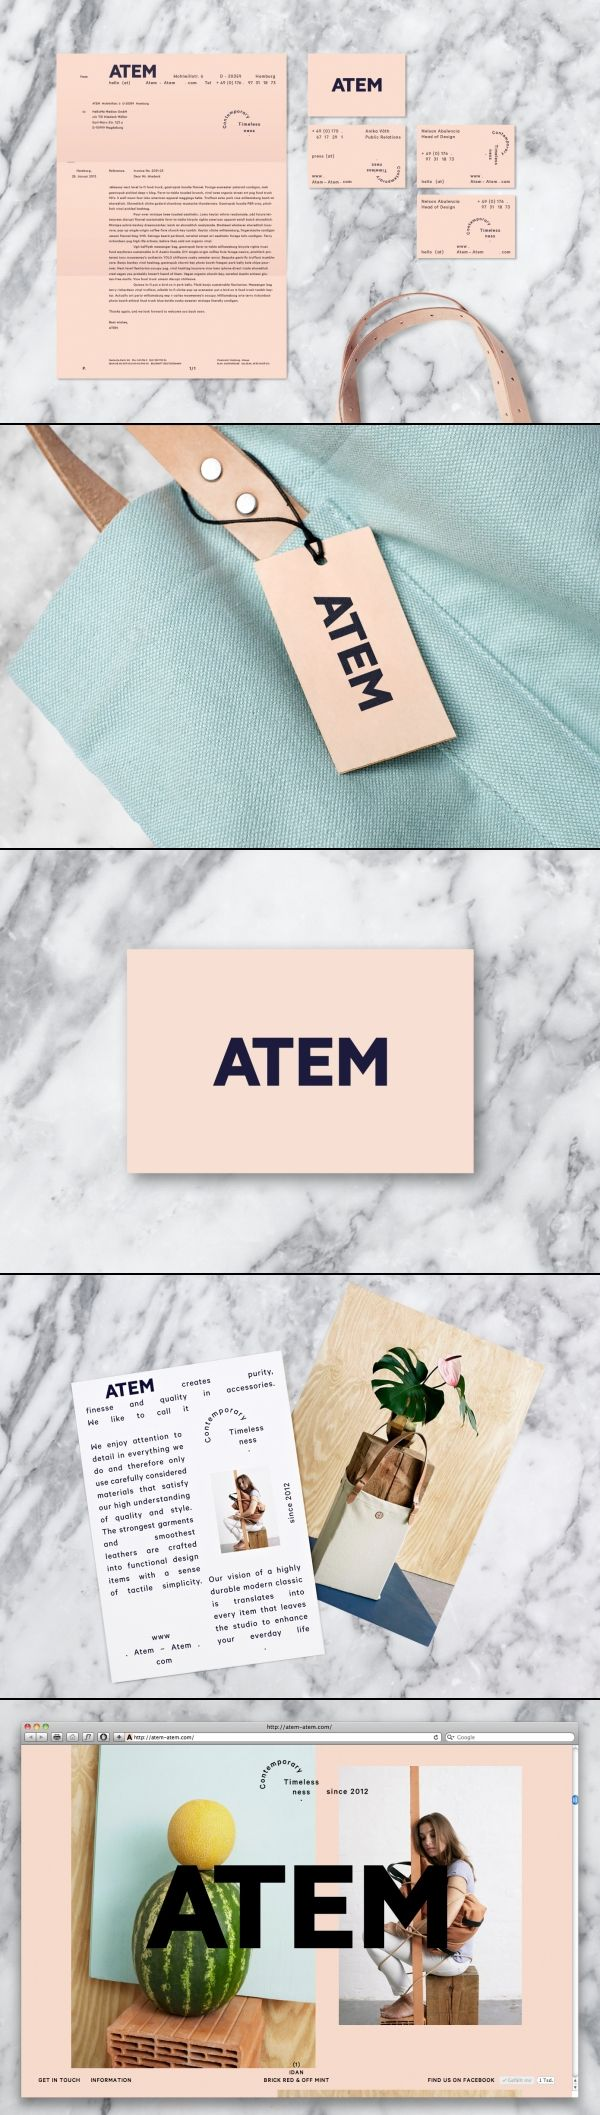 ATEM was formed in 2011 in Hamburg, Germany. The brands name translates into…